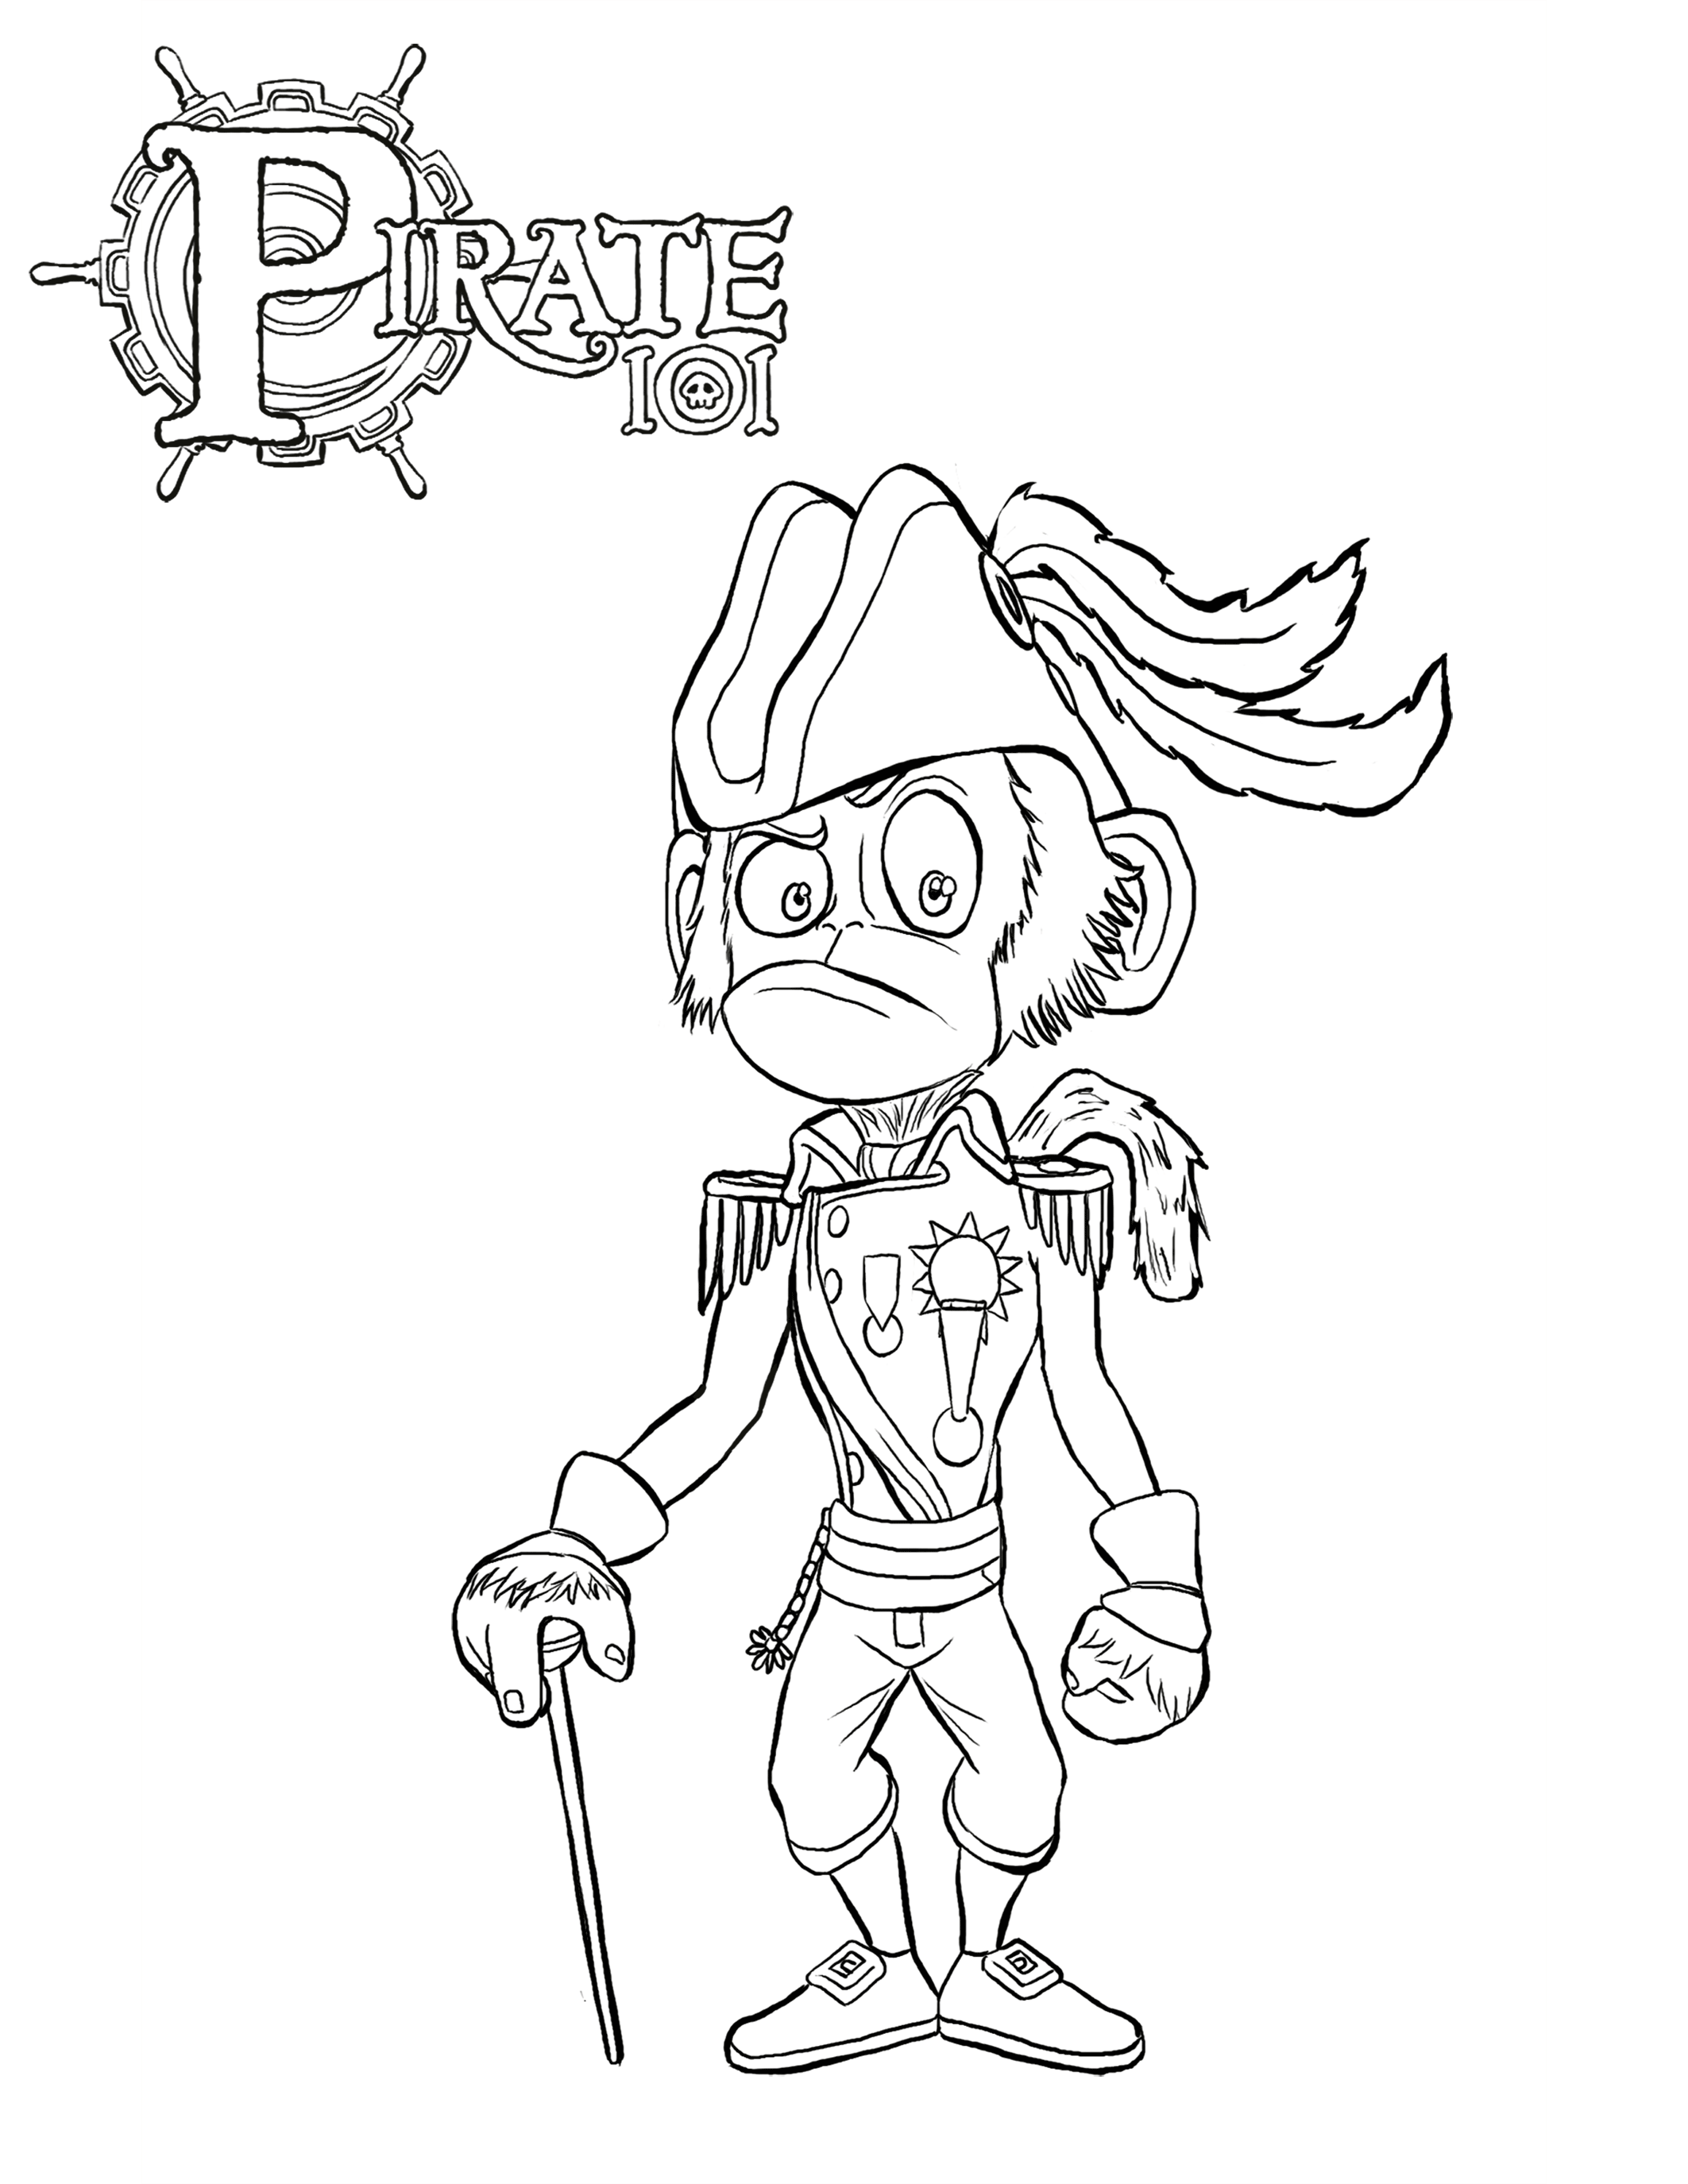 Pirate colouring pages to print - Download Mr Gandry Coloring Page